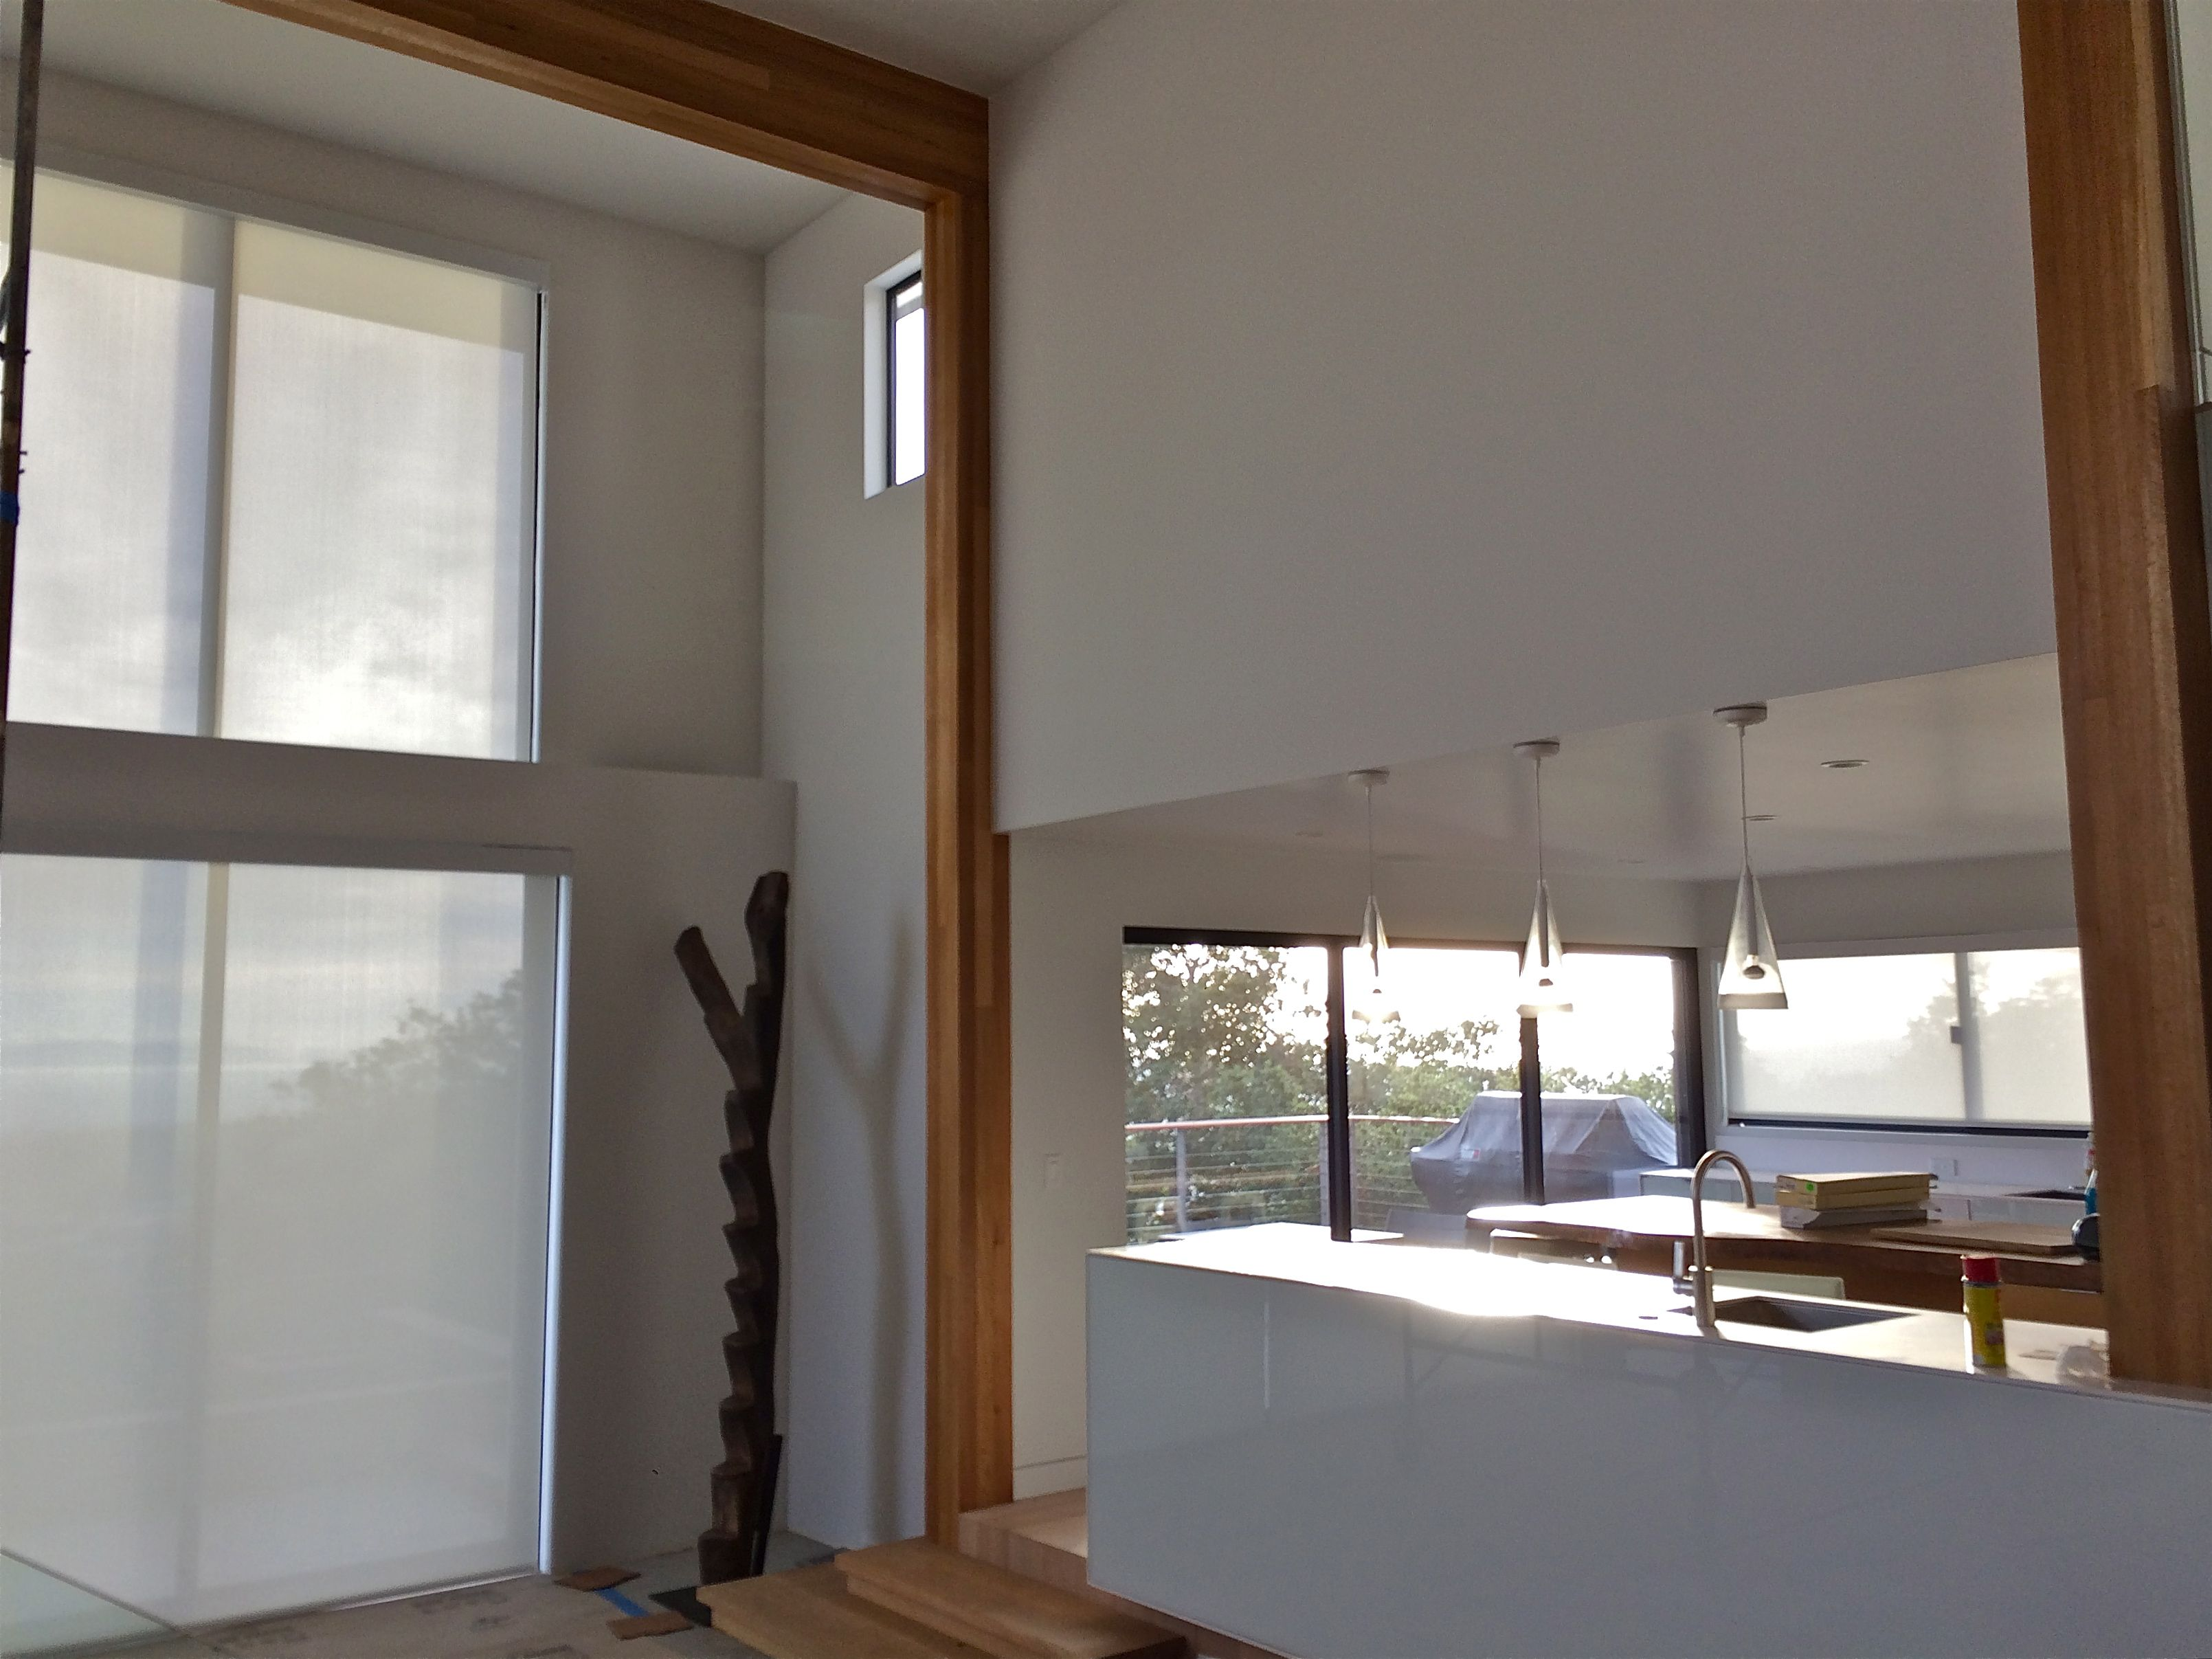 Have Huge Windows Or Doors? No Problem! Motorized Roller Shades With Fascia  Make A